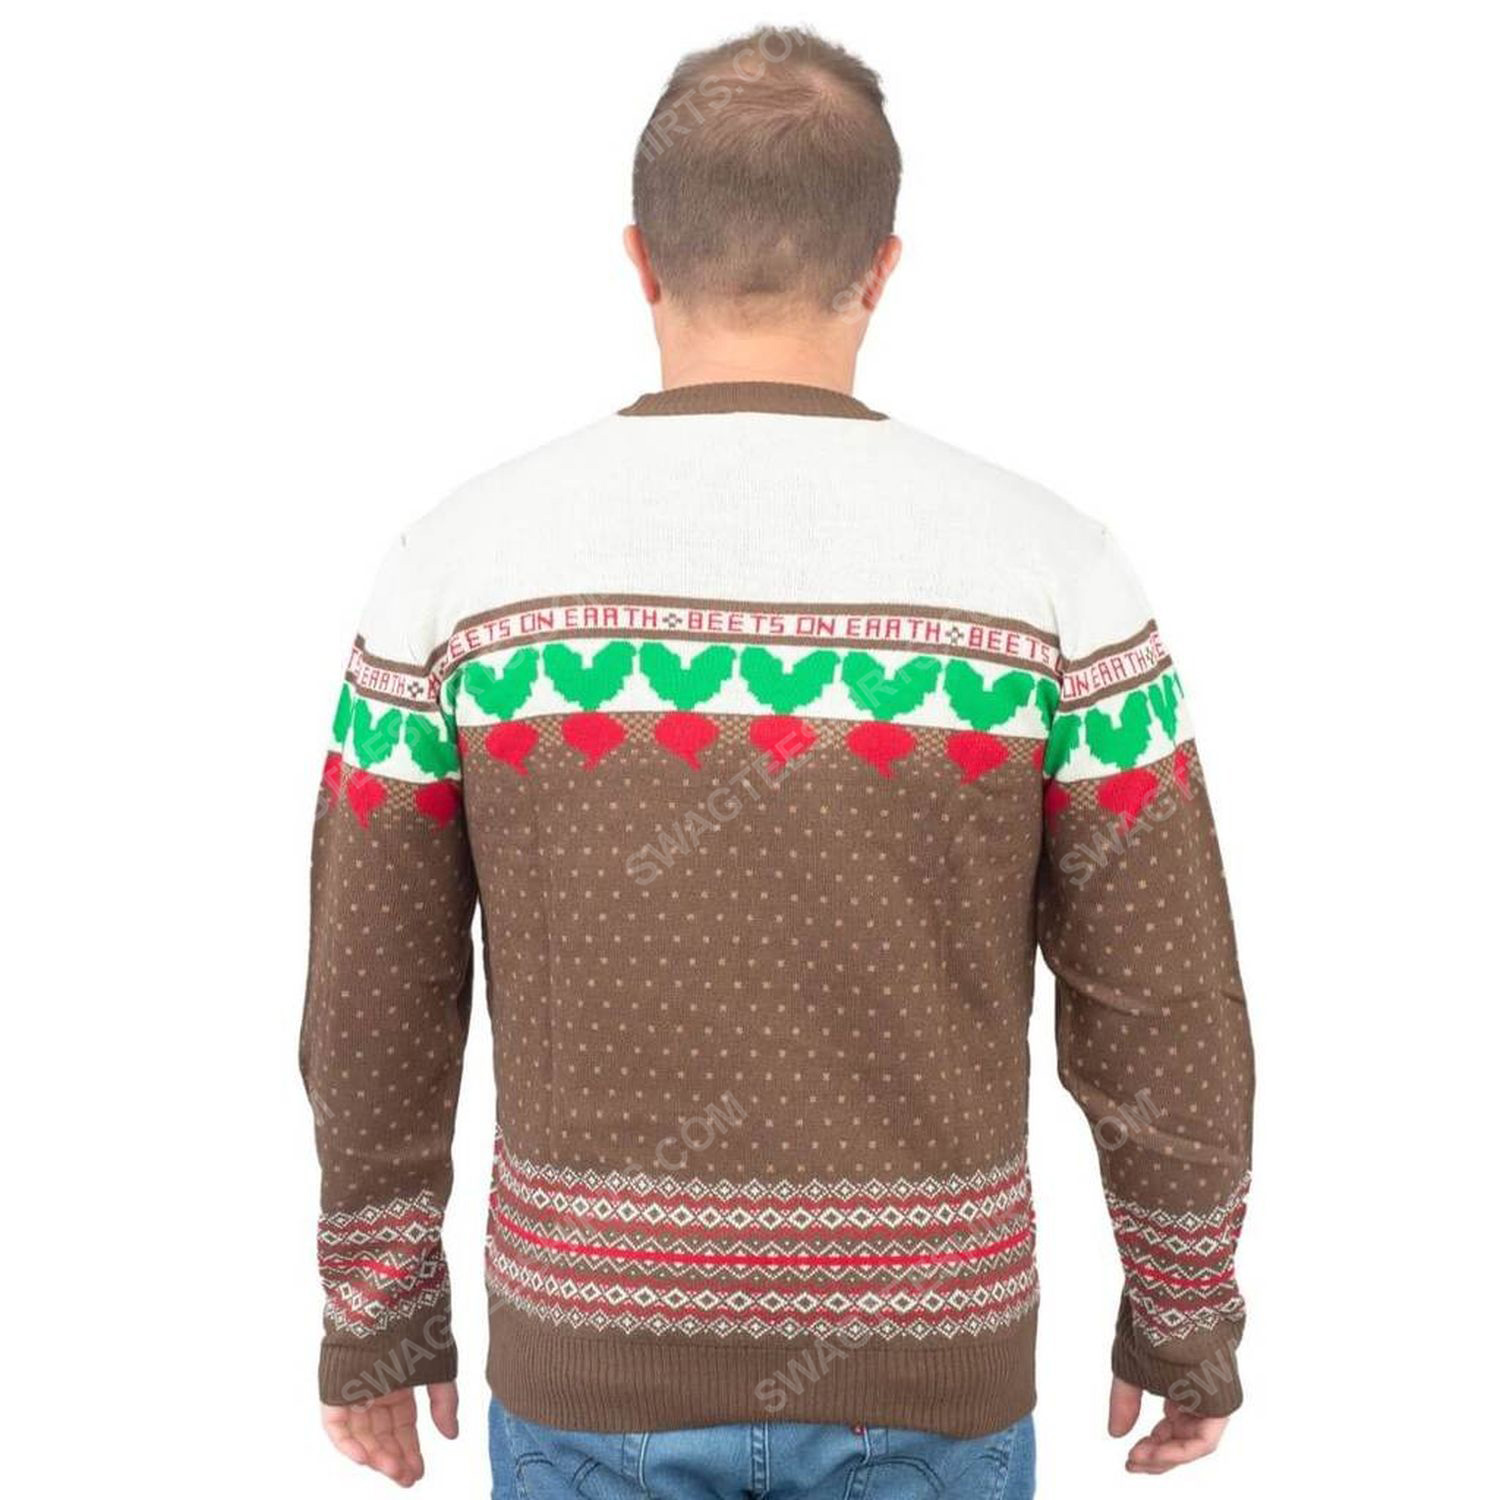 The office dwight schrute farms beets full print ugly christmas sweater 3 - Copy